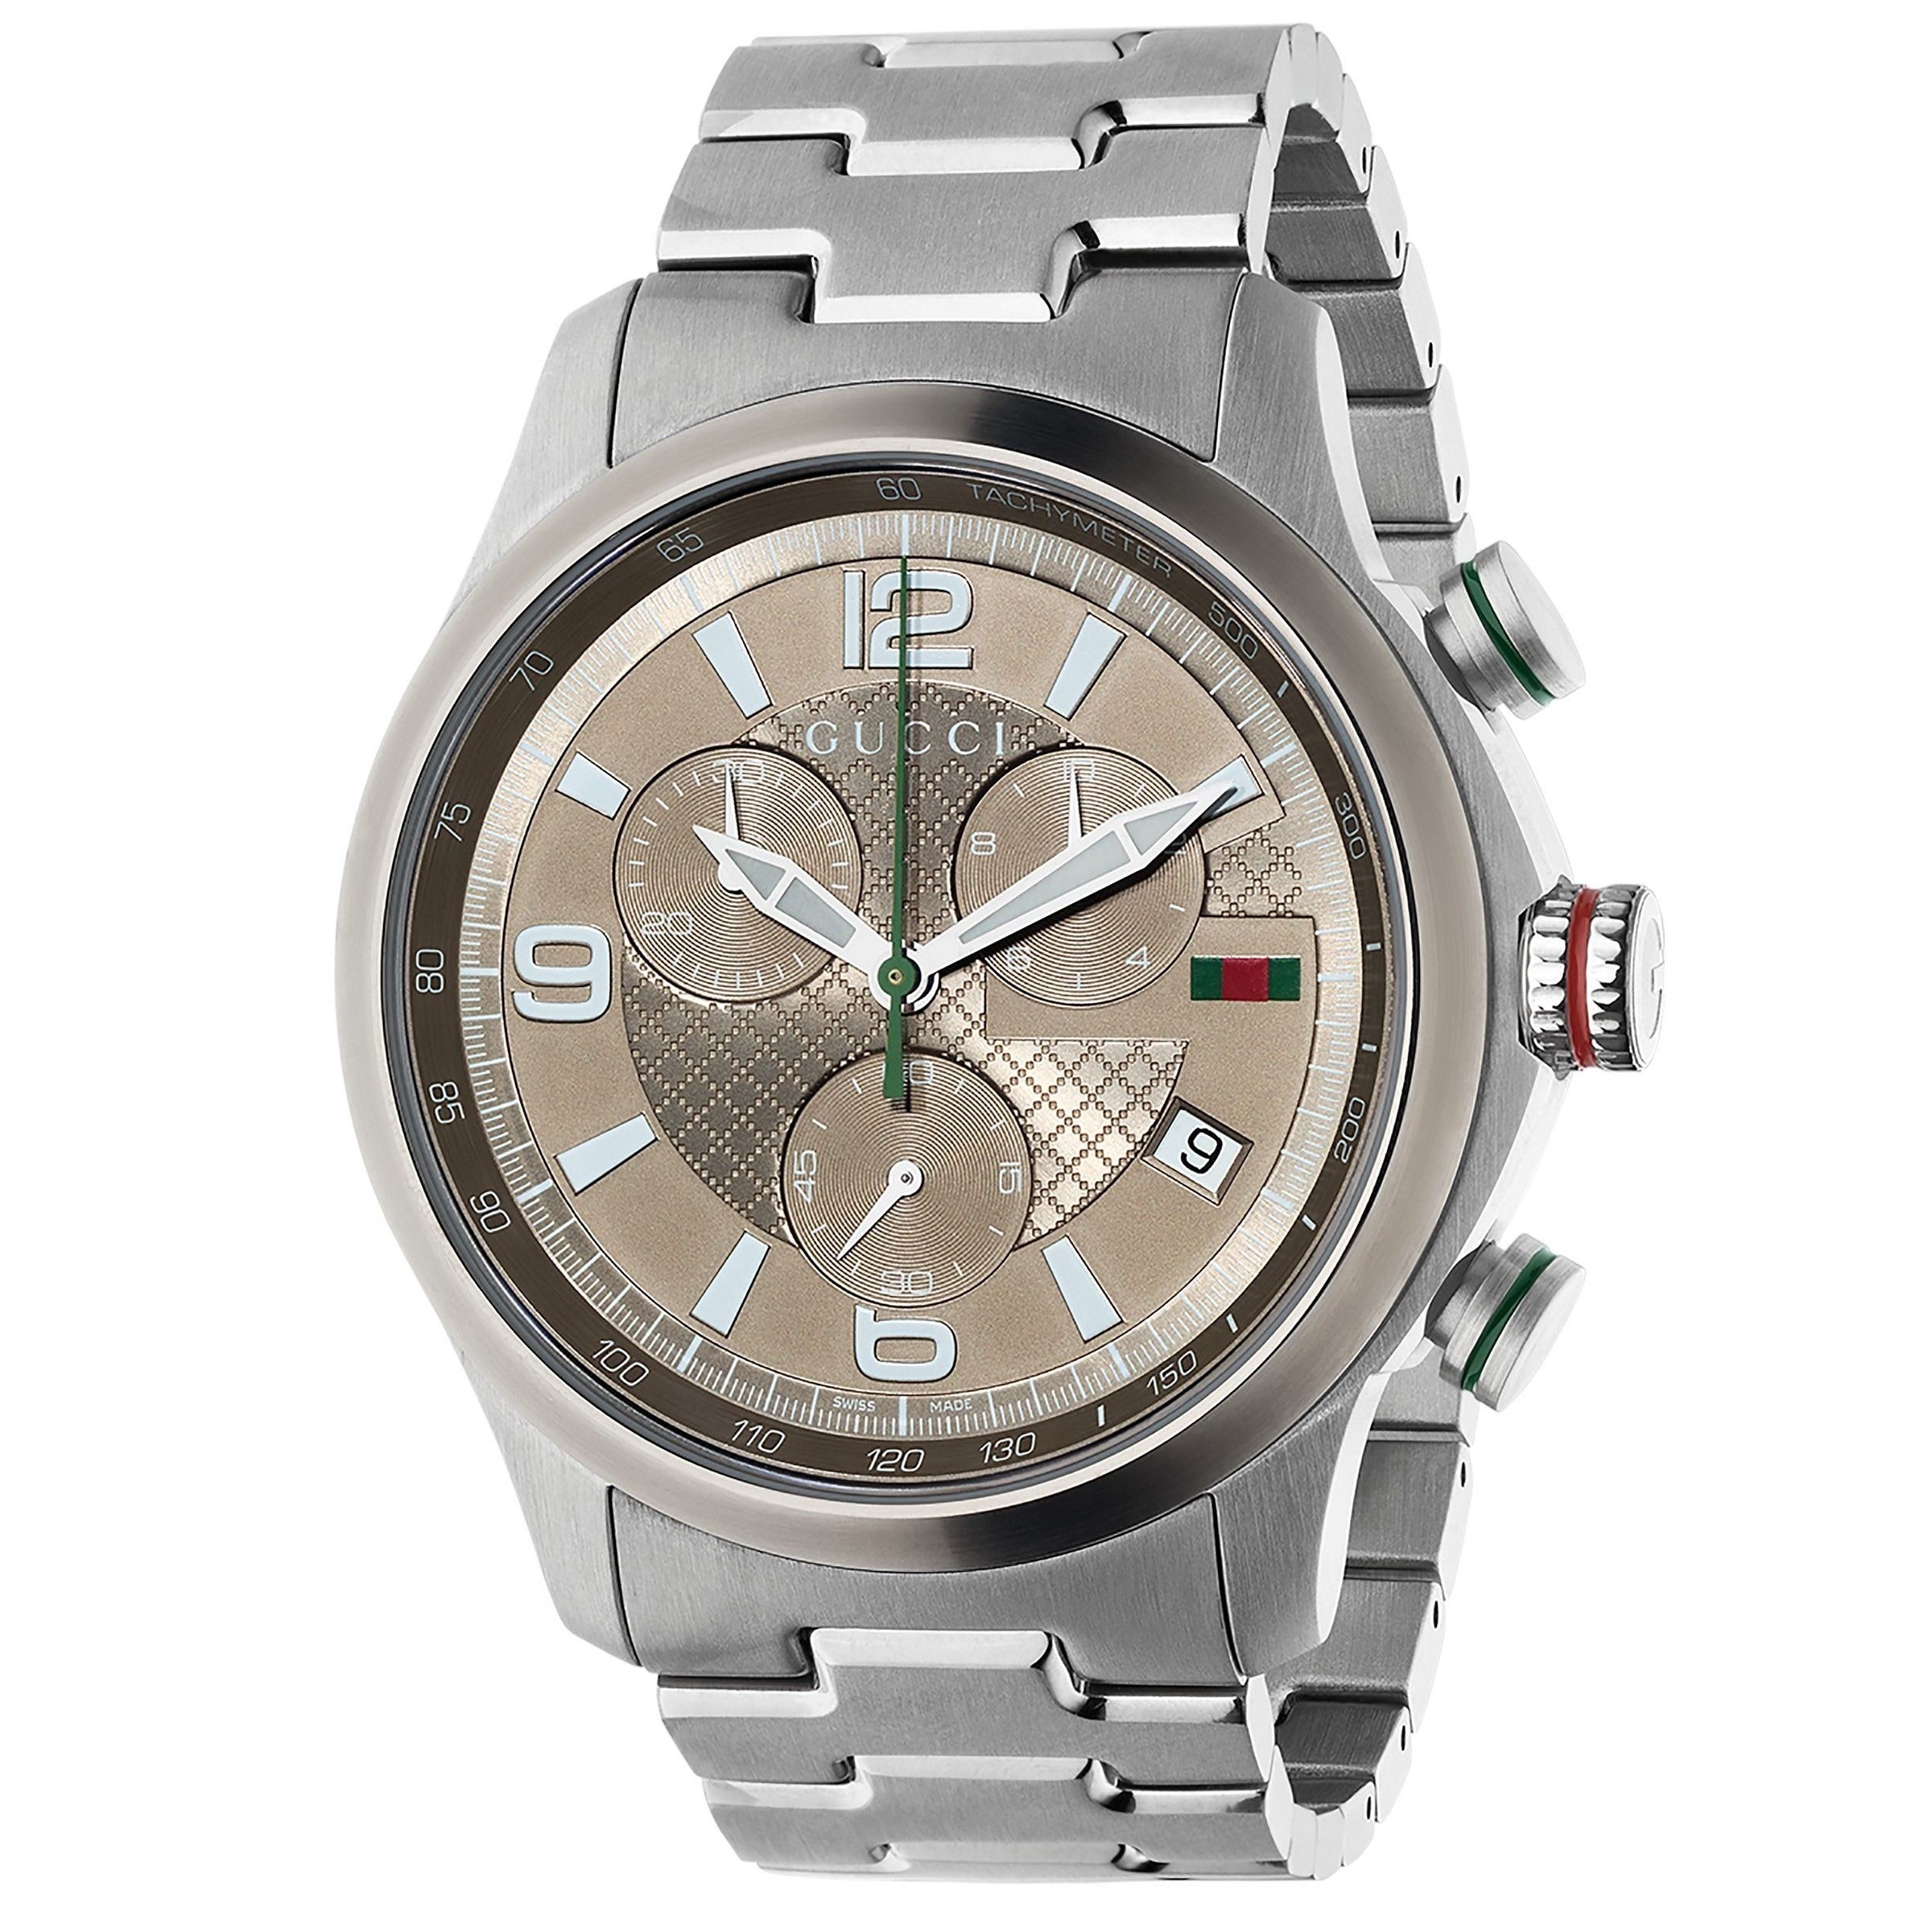 cabfa8220ff Shop Gucci Men s YA126248  Gucci G-Timeless  Chronograph Stainless Steel  Watch - Free Shipping Today - Overstock - 9086158